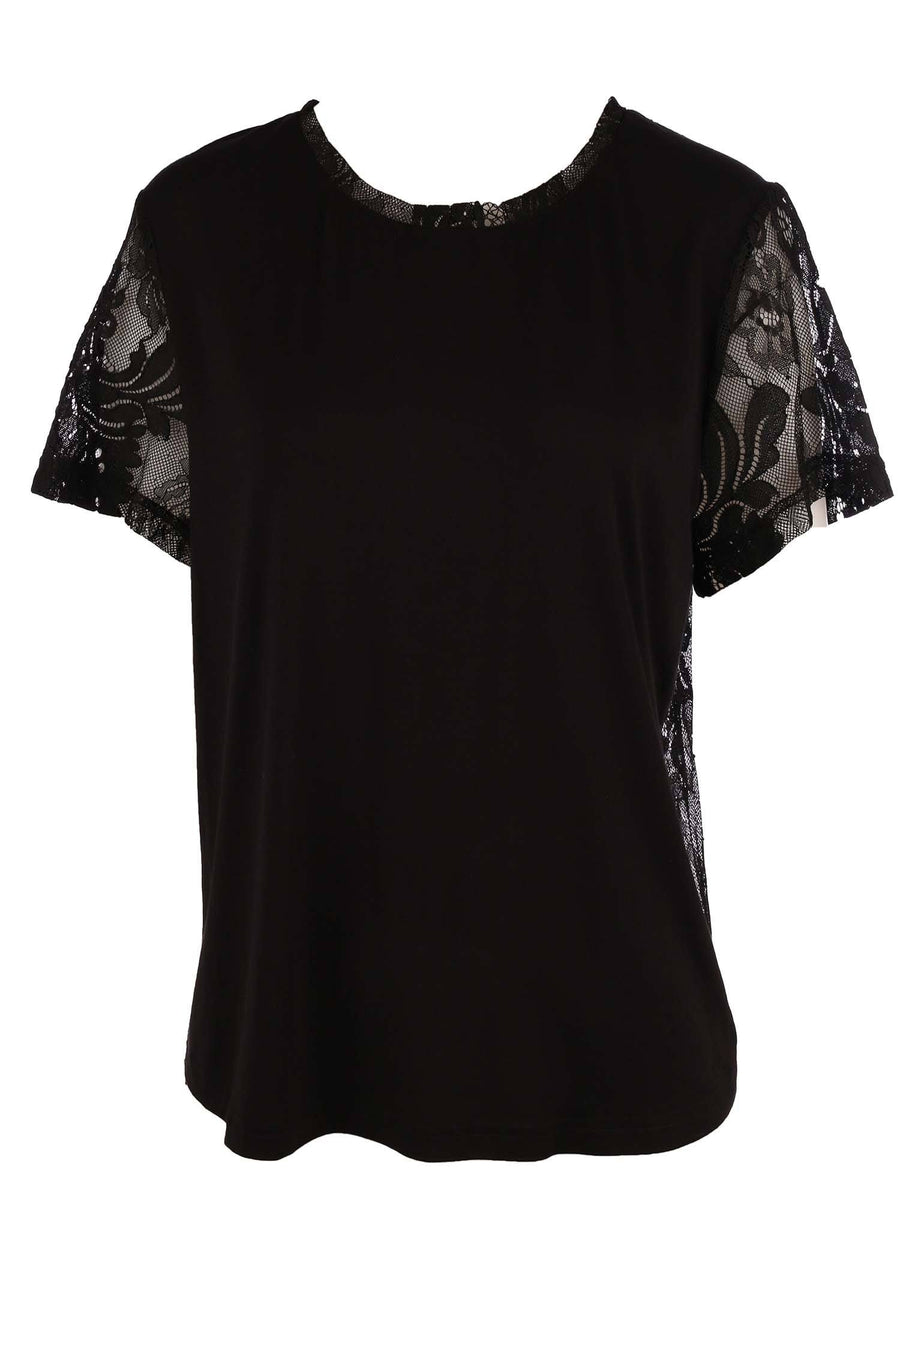 Holier Than Thou Top by Curate Frockaholics.com